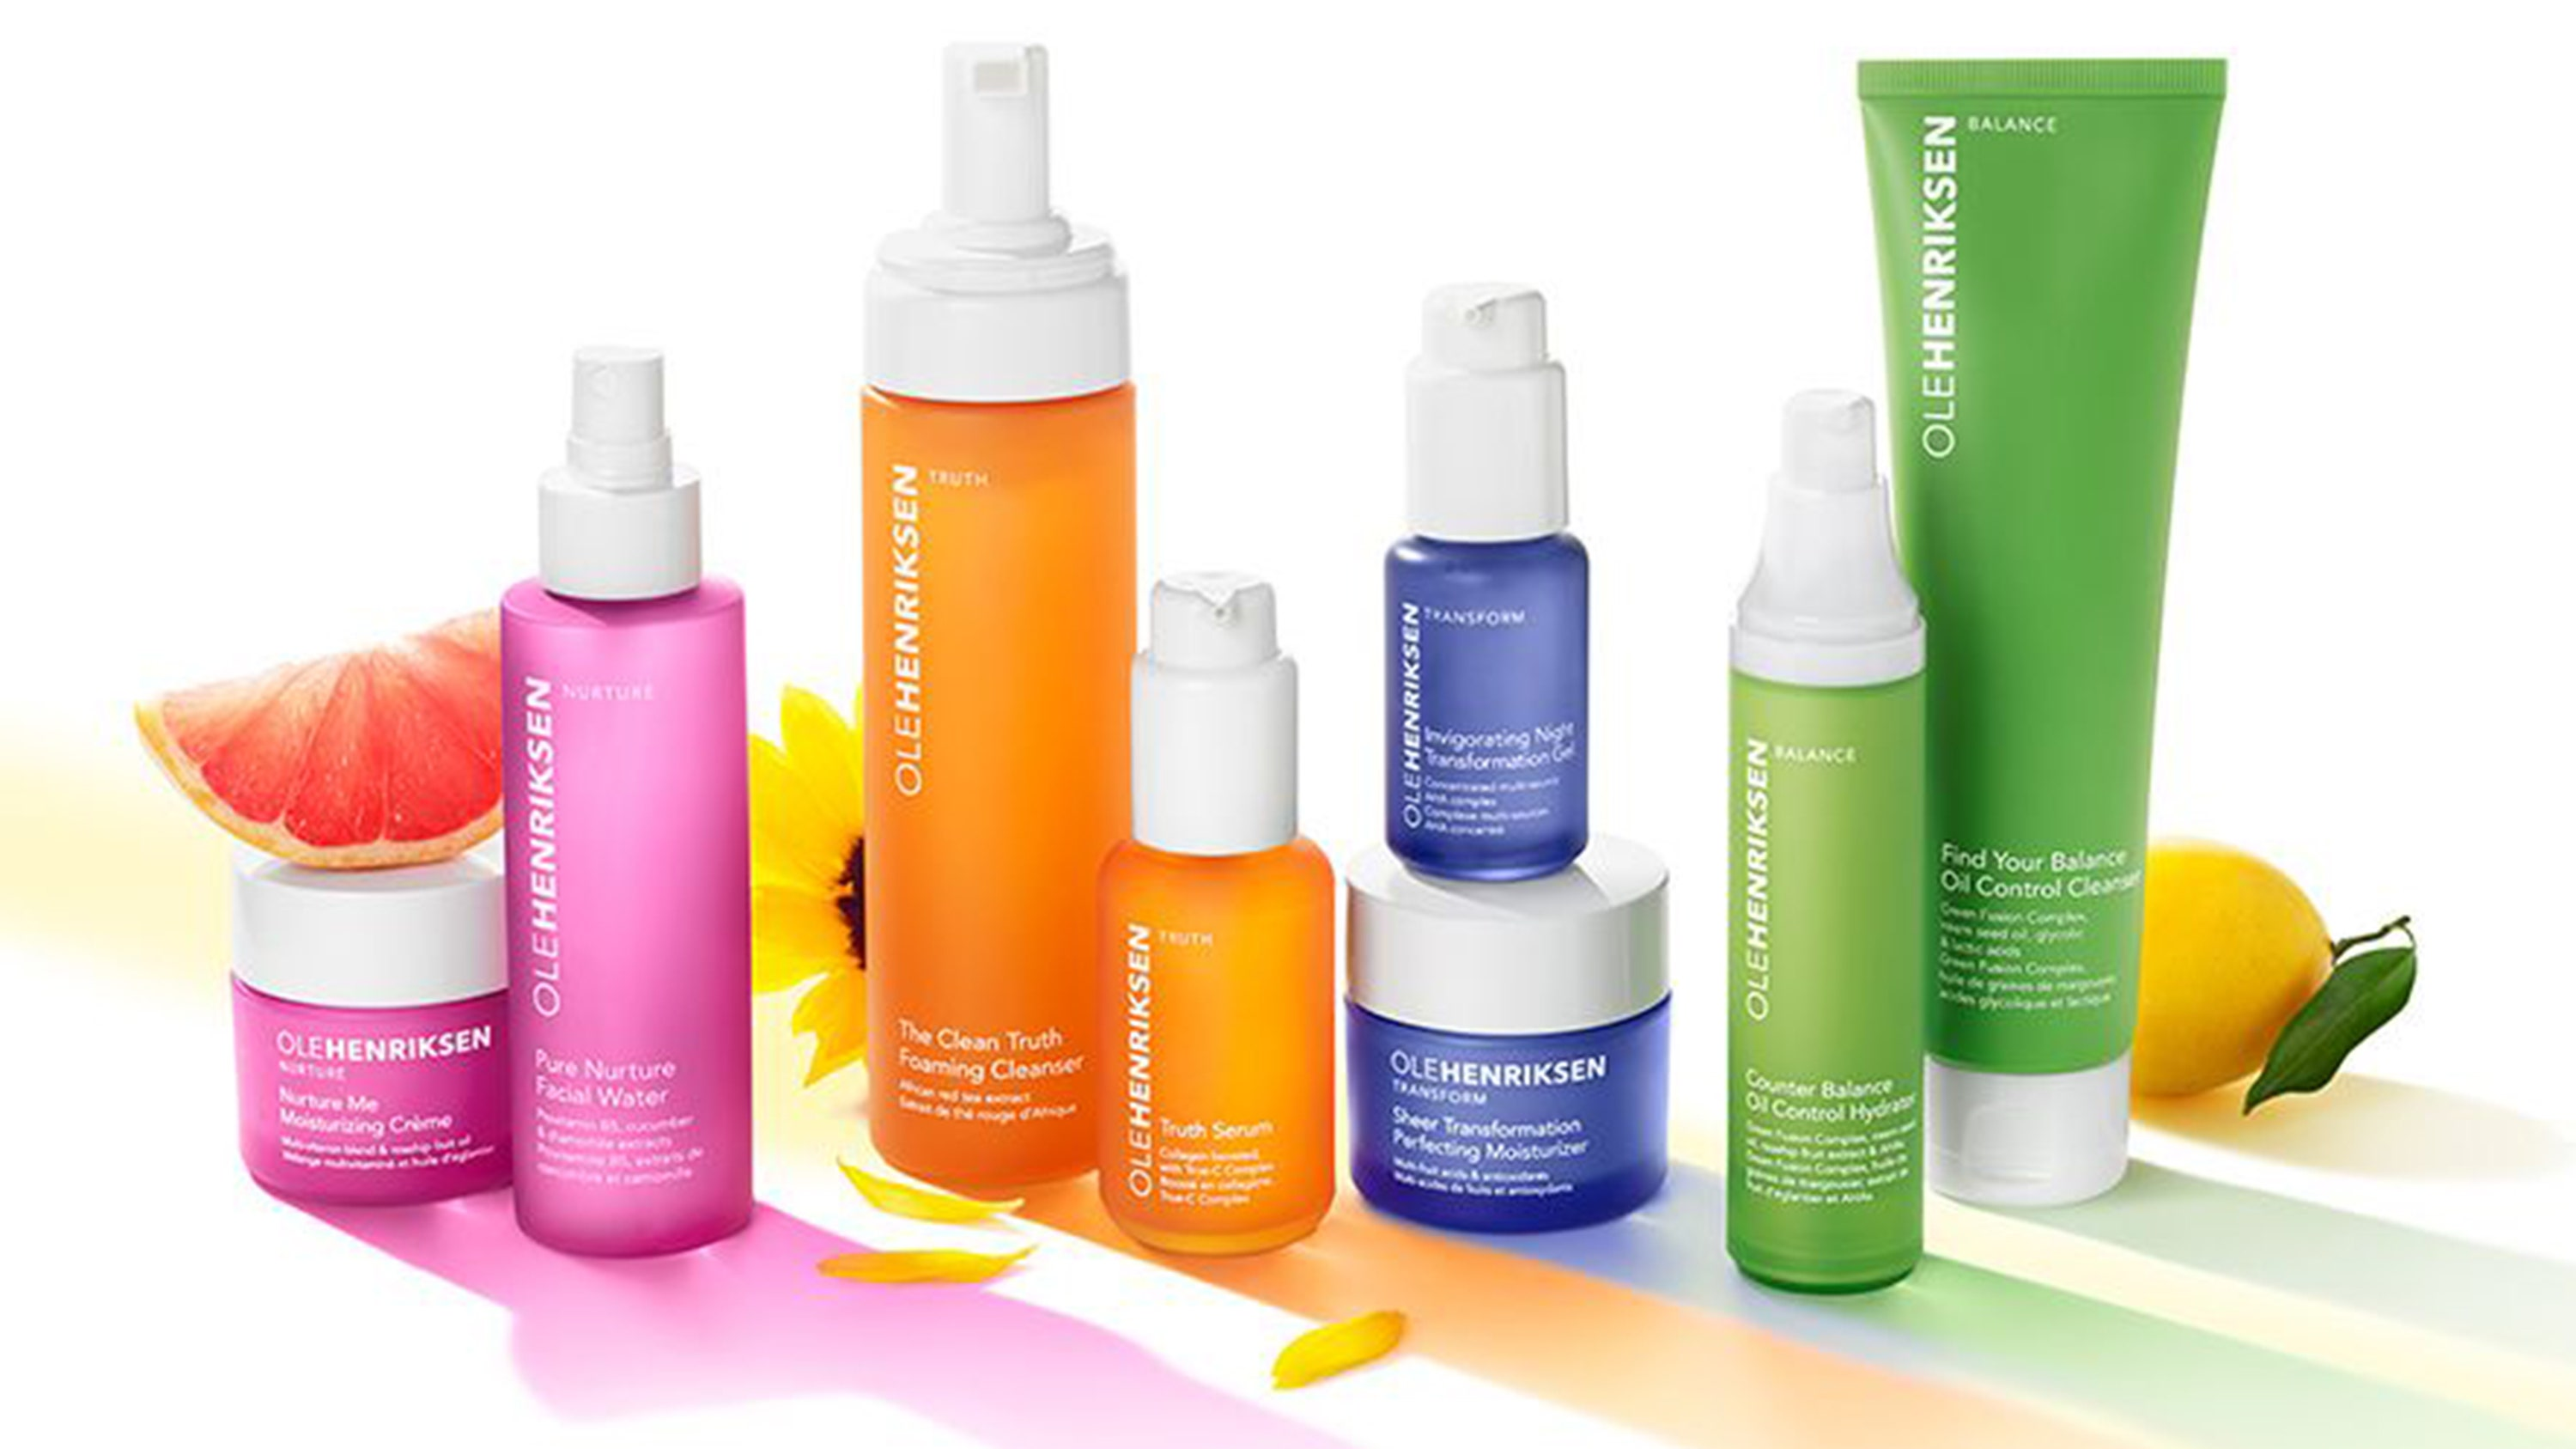 OLE HENRIKSEN: Buy OLEHENRIKSEN skin care products online or visit our OLEHENRIKSEN Face/Body day spa in Los Angeles. Shop our natural and anti-aging skin care line …